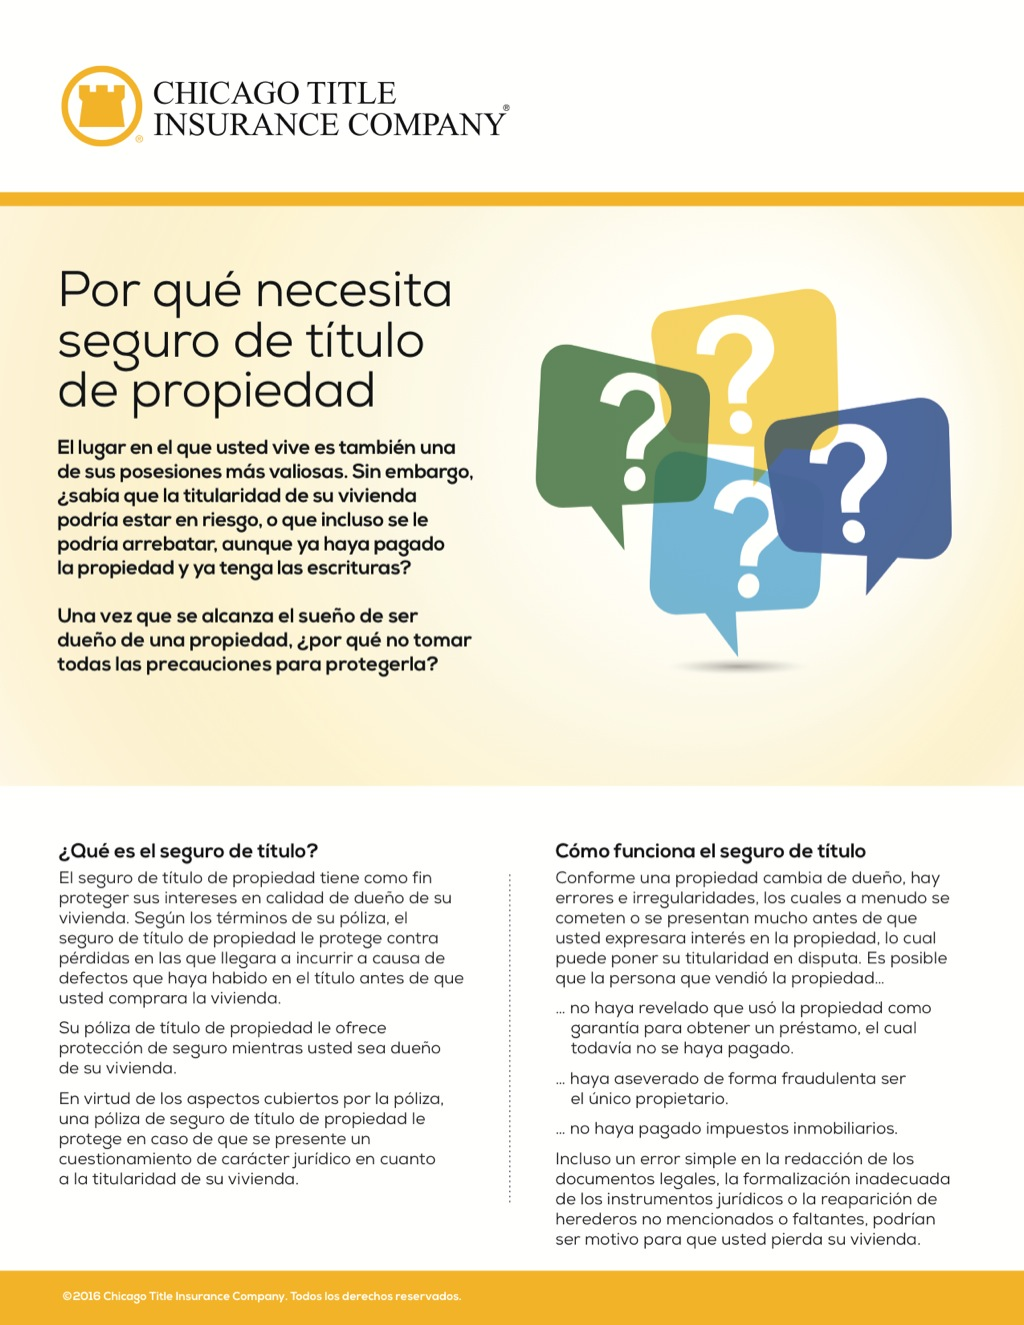 Corefact Why you need owner's title insurance - Spanish - CTIC